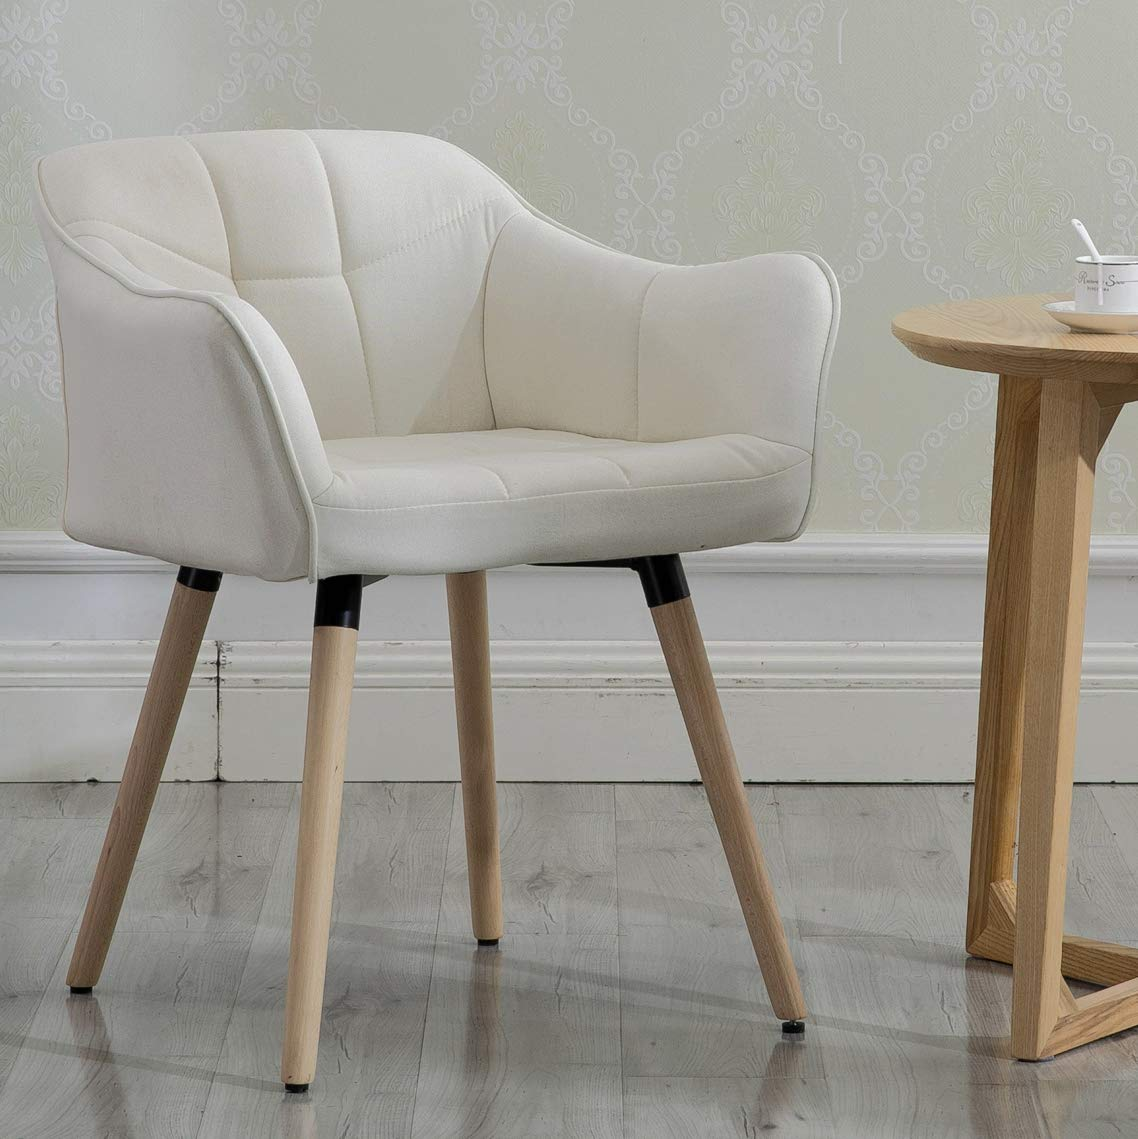 Windaze Fabric Accent Chair with Solid Wood Legs Modern Leisure Living Room Office Arm Chair, Cream White by windaze